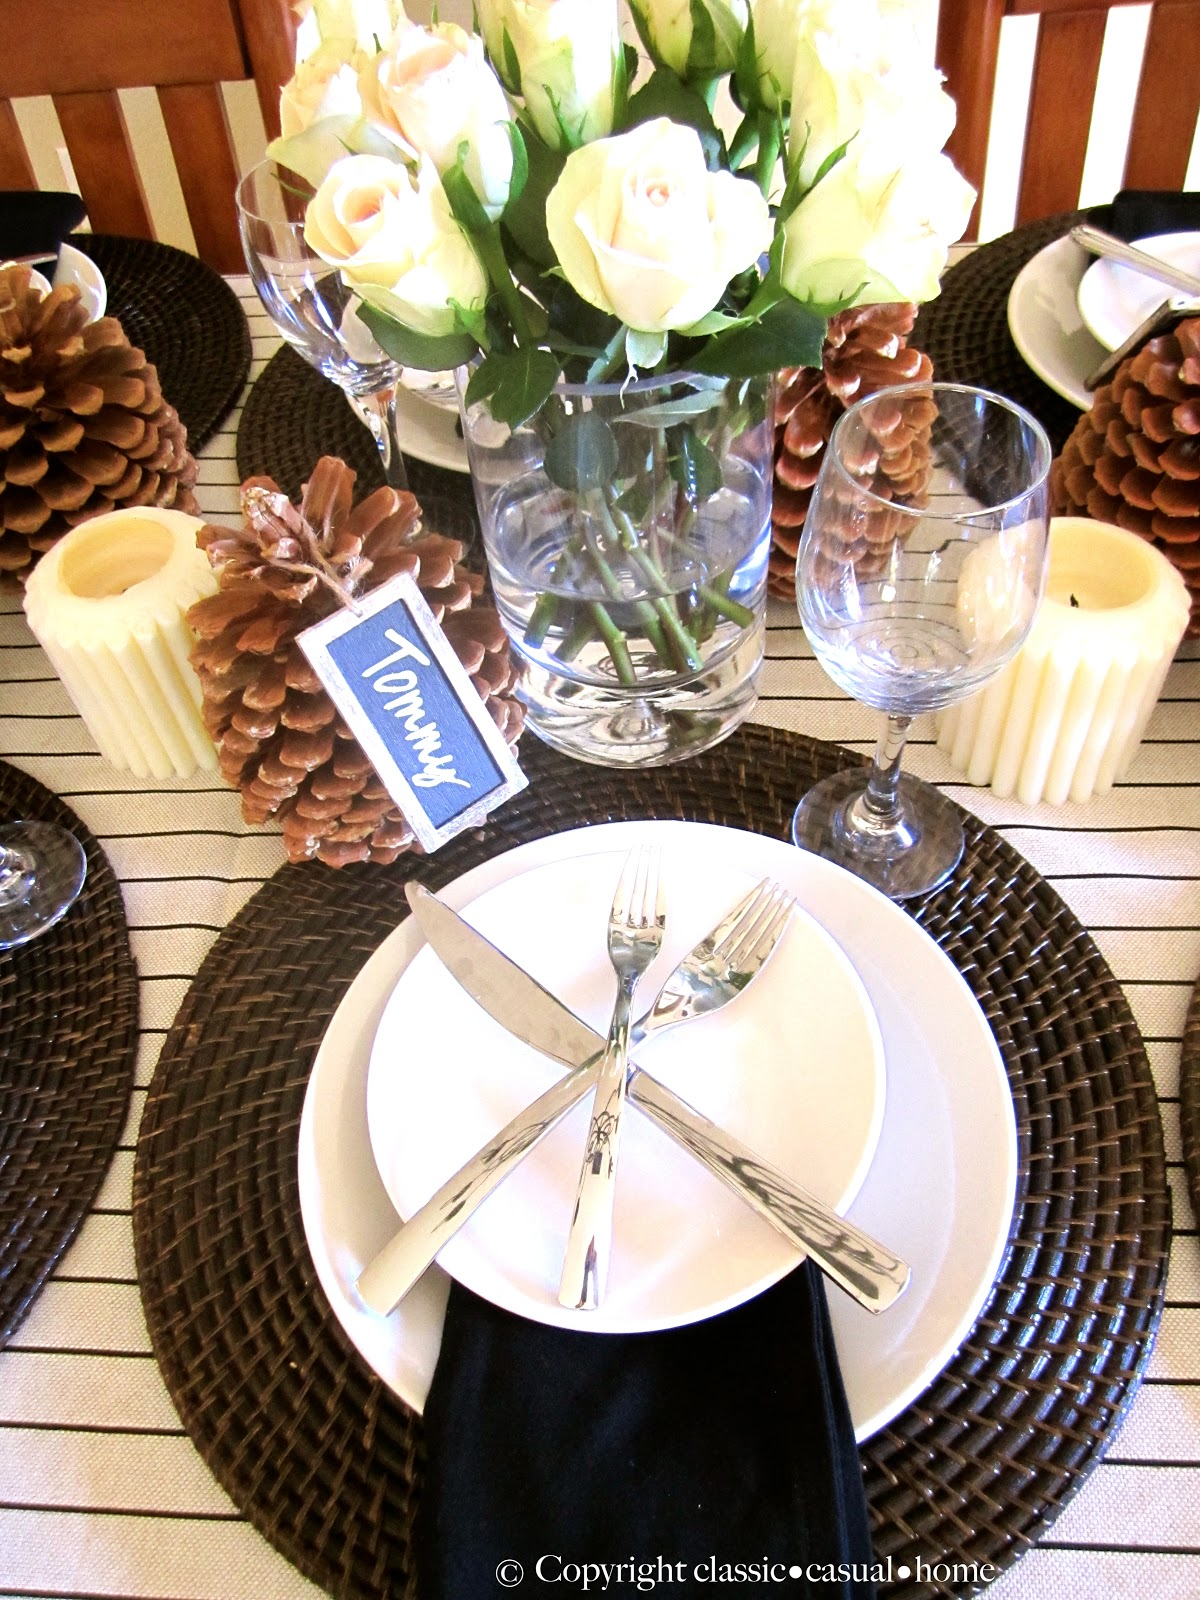 ... casual • home: Rustic Table Setting and Roasted Lemon Cauliflower